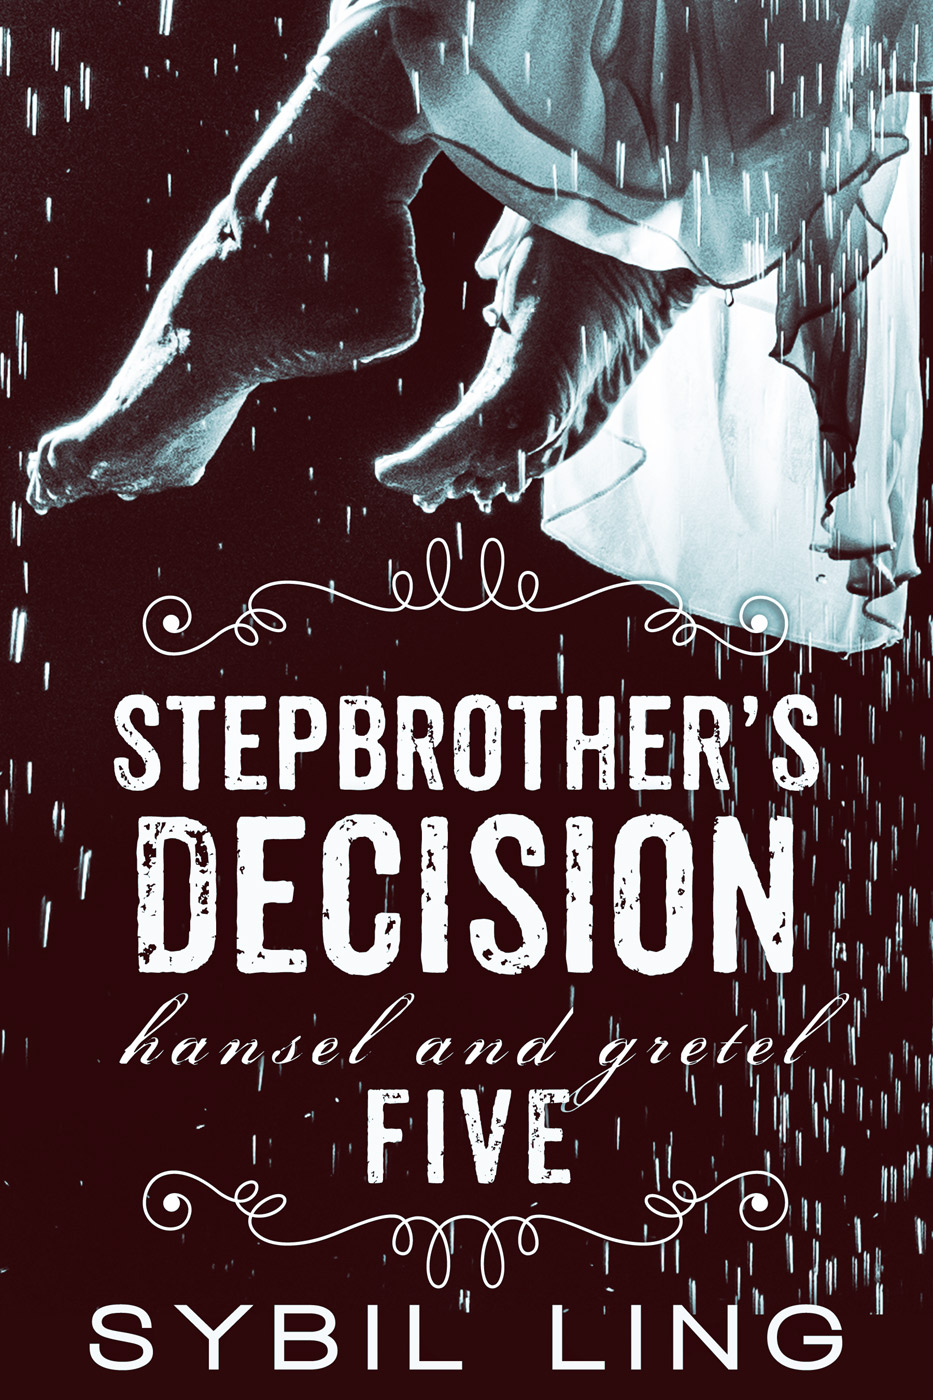 Stepbrother's decision (hansel and gretel #5)